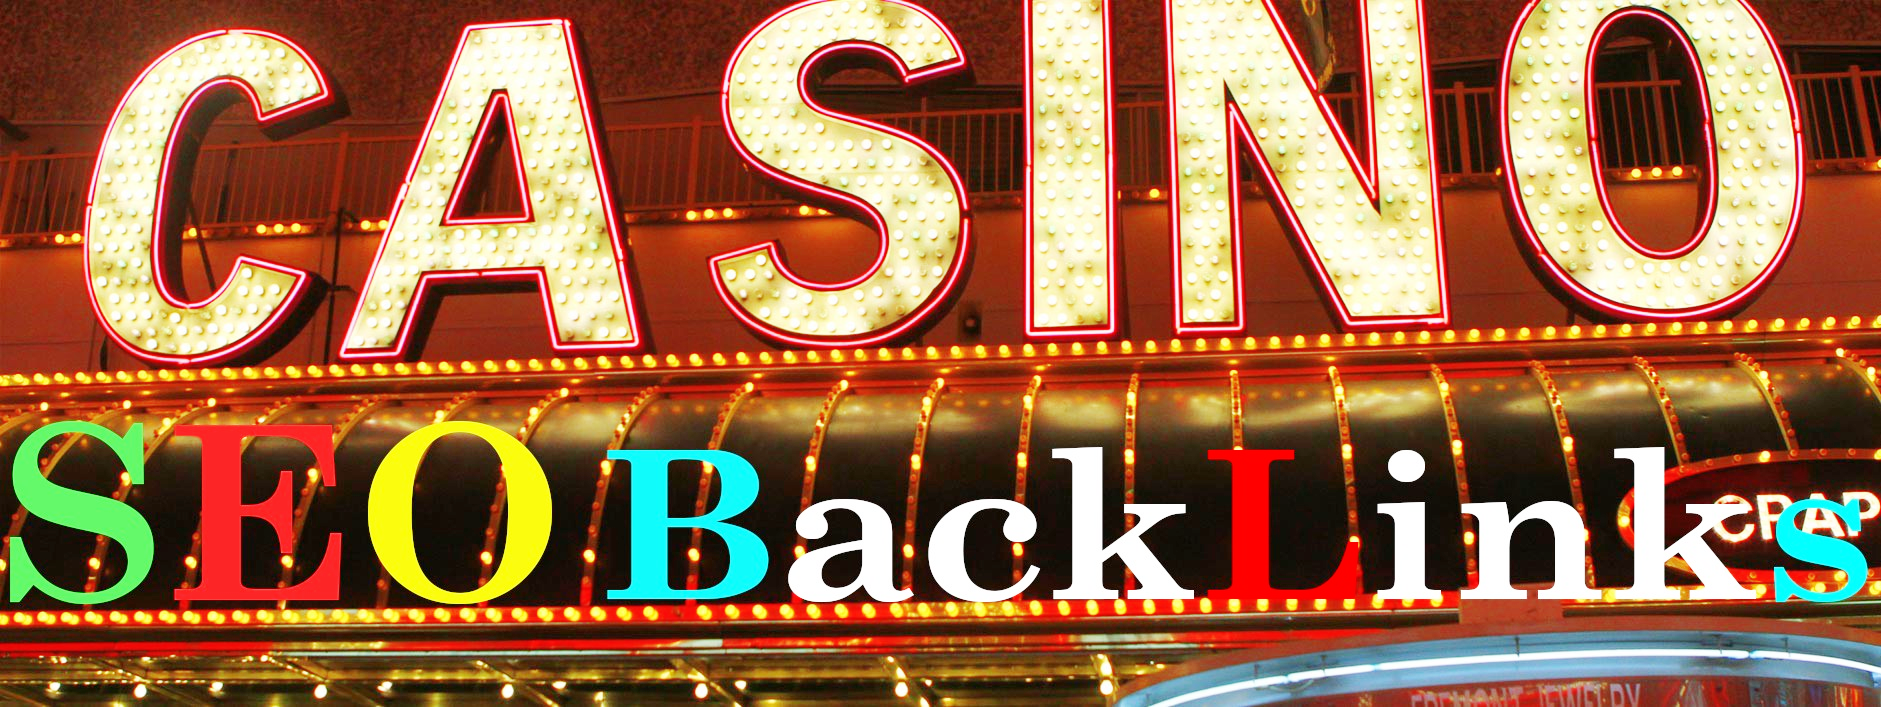 GET 400+ PRIMIUM CASINO PBN Backlink landing page web 2.0 with HIGH DA/PA/CF/TF WITH UNIQUE WEBSITE